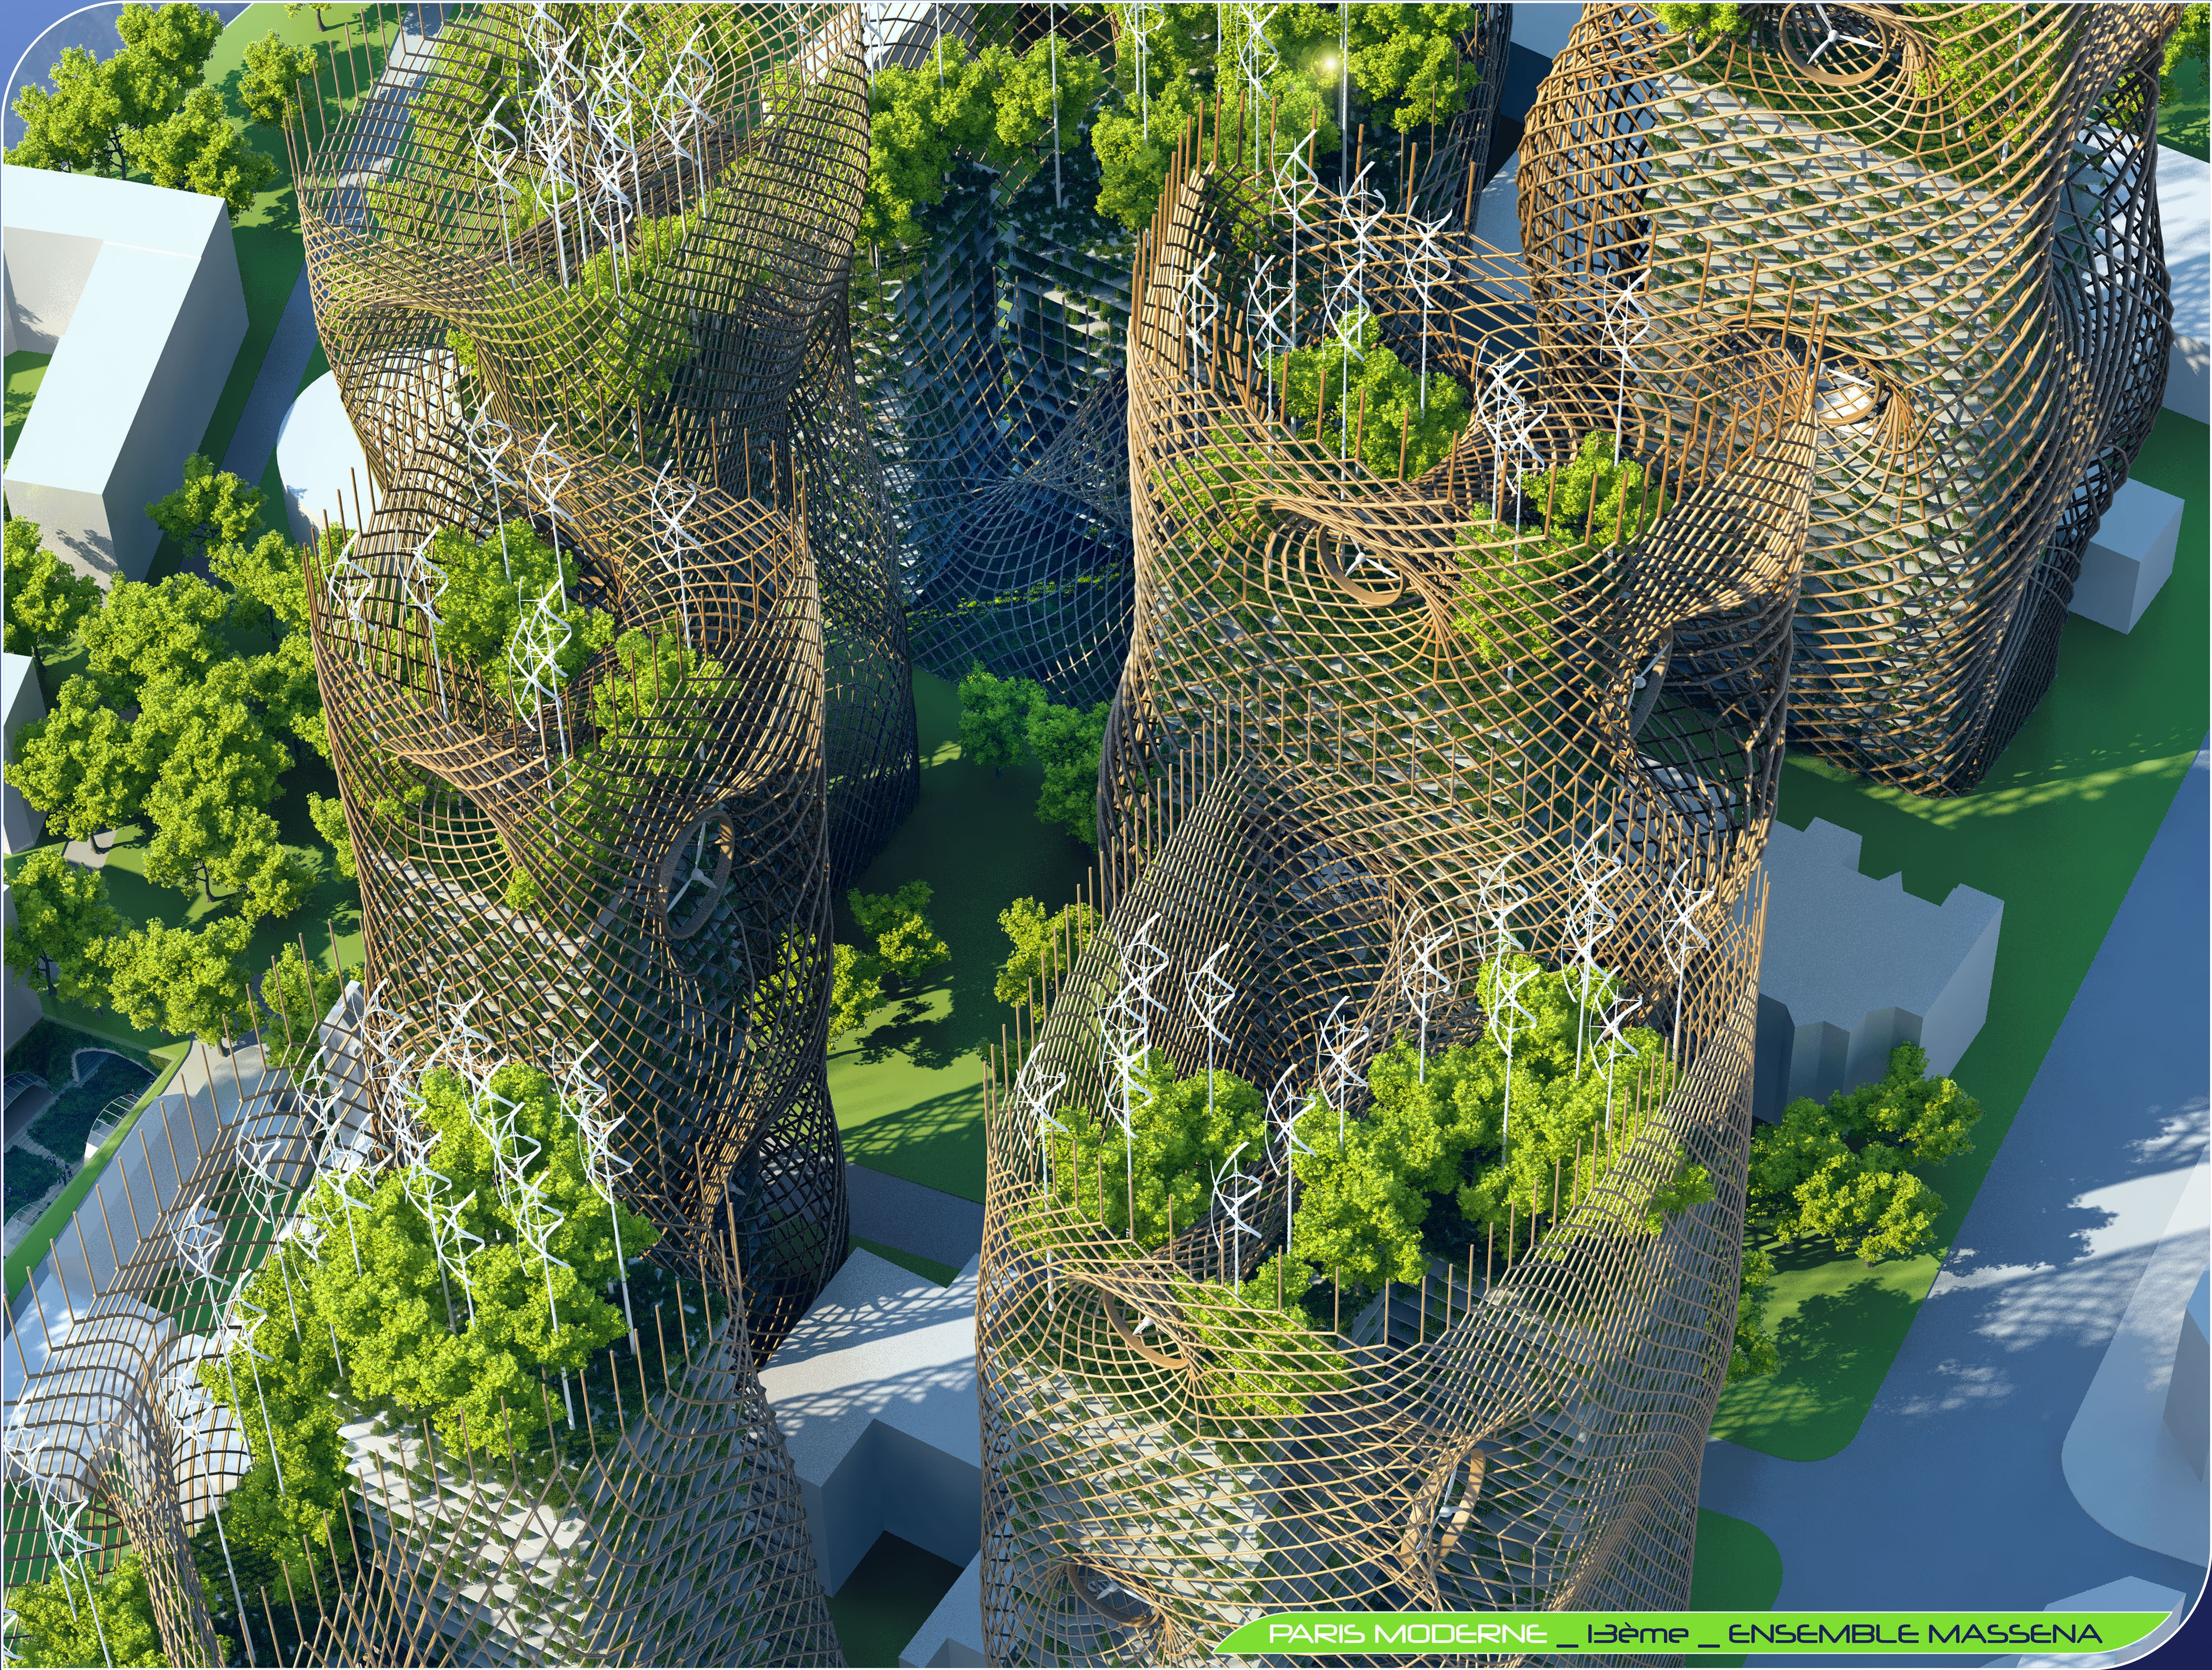 Paris 2050, Bamboo Nest Towers